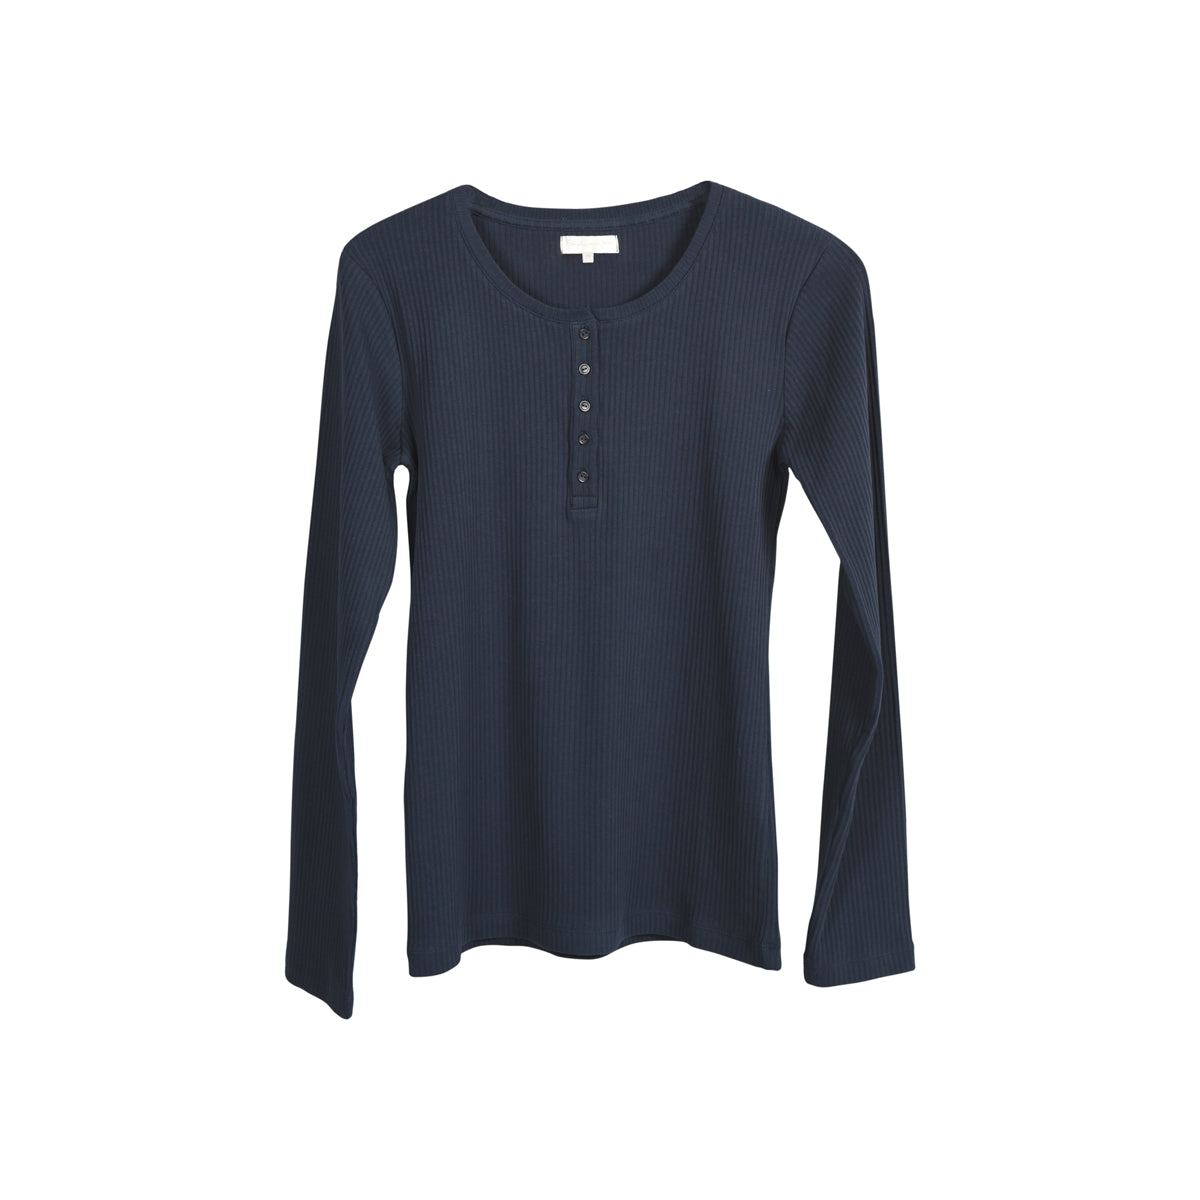 Pyjama top by Sophie Allport